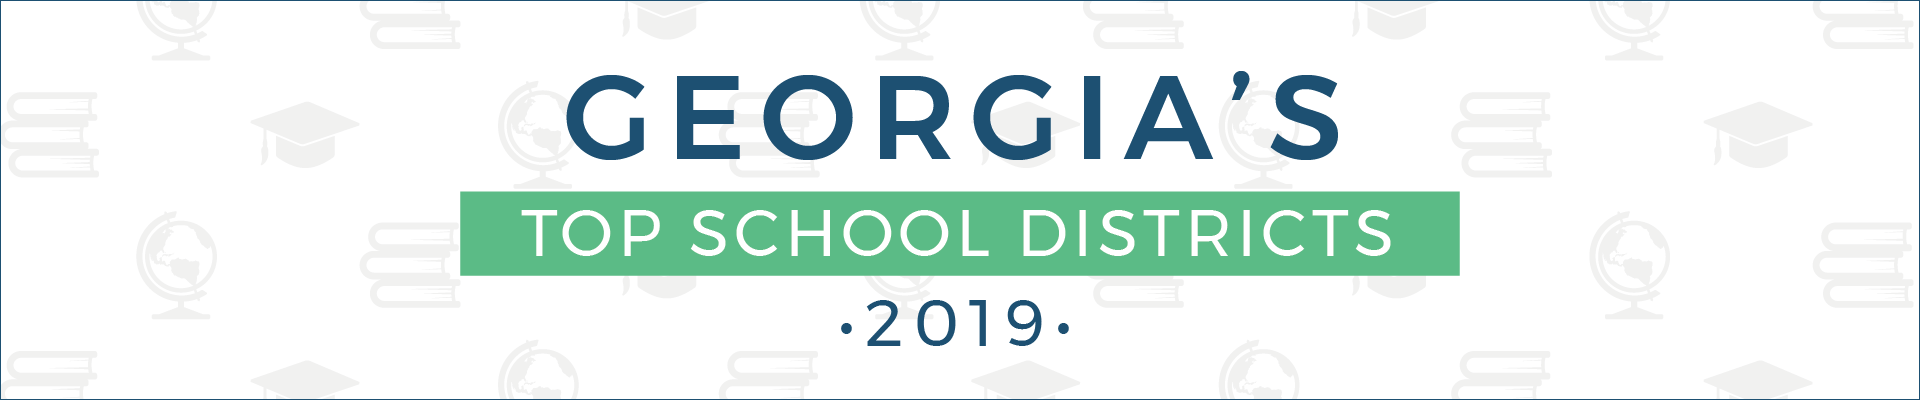 top school districts, 2019 - georgia - banner